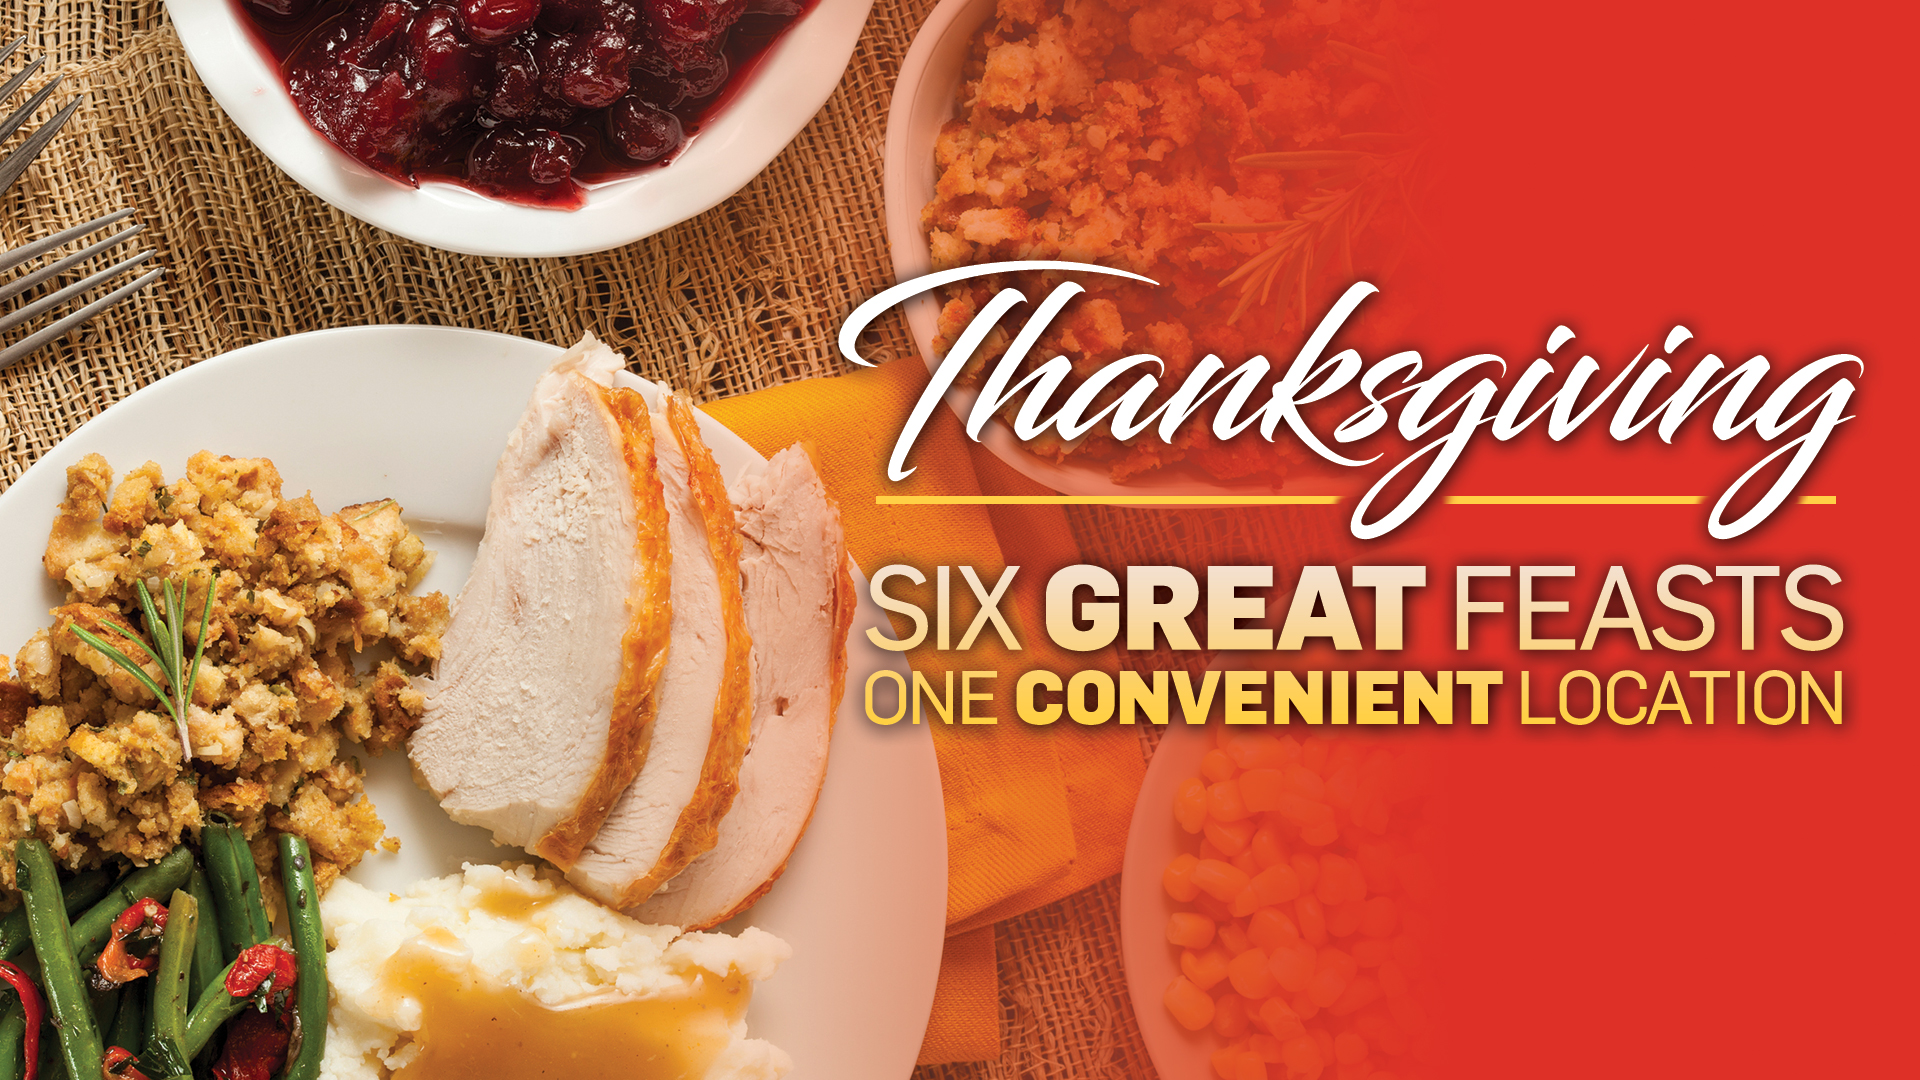 Thanksgiving Feasts at Clearwater Casino Resort